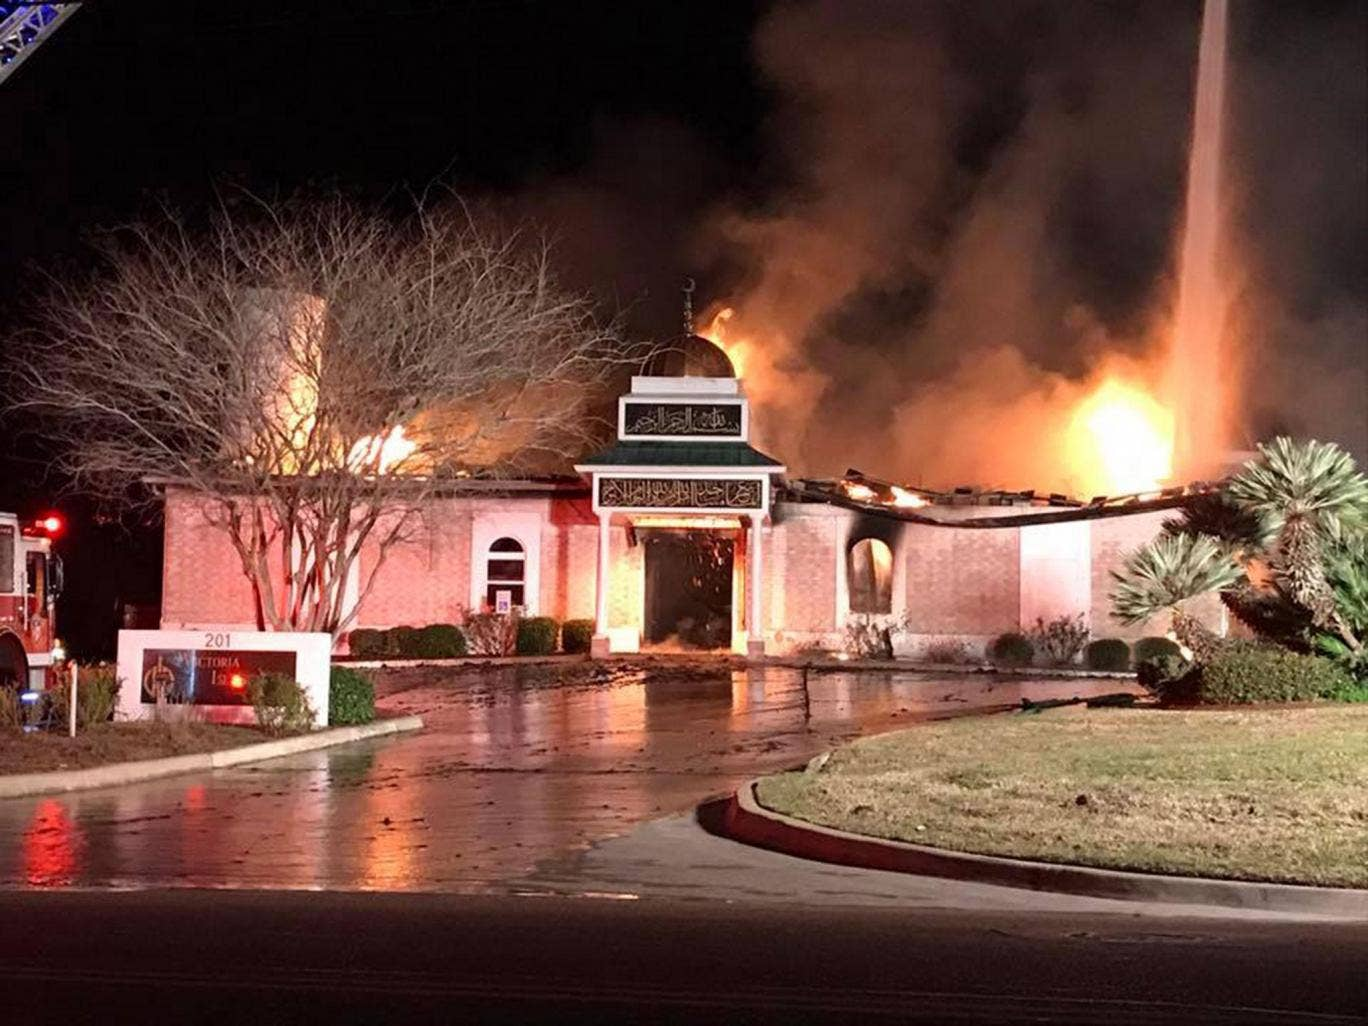 The blaze destroyed the mosque in Victoria, Texas Victoria Islamic Center